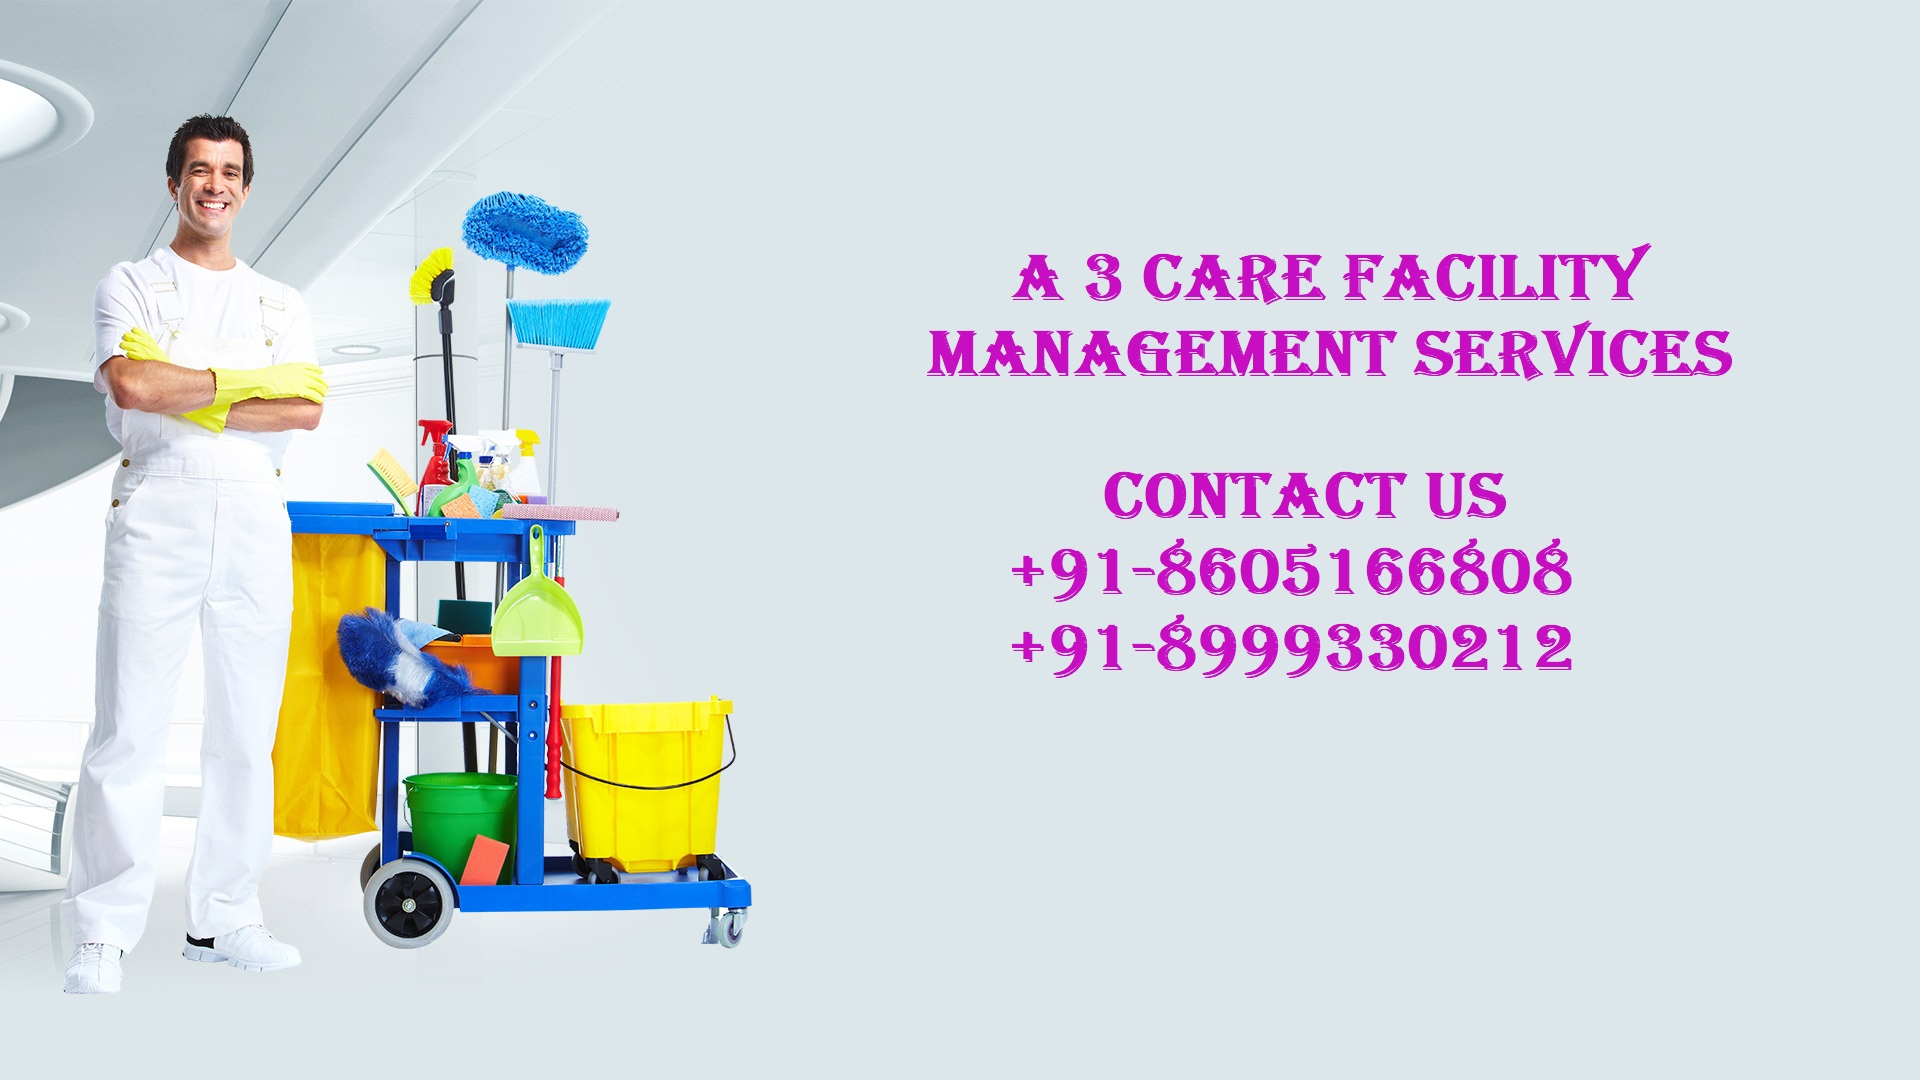 housekeeping services contact pune pimpri chinchwad